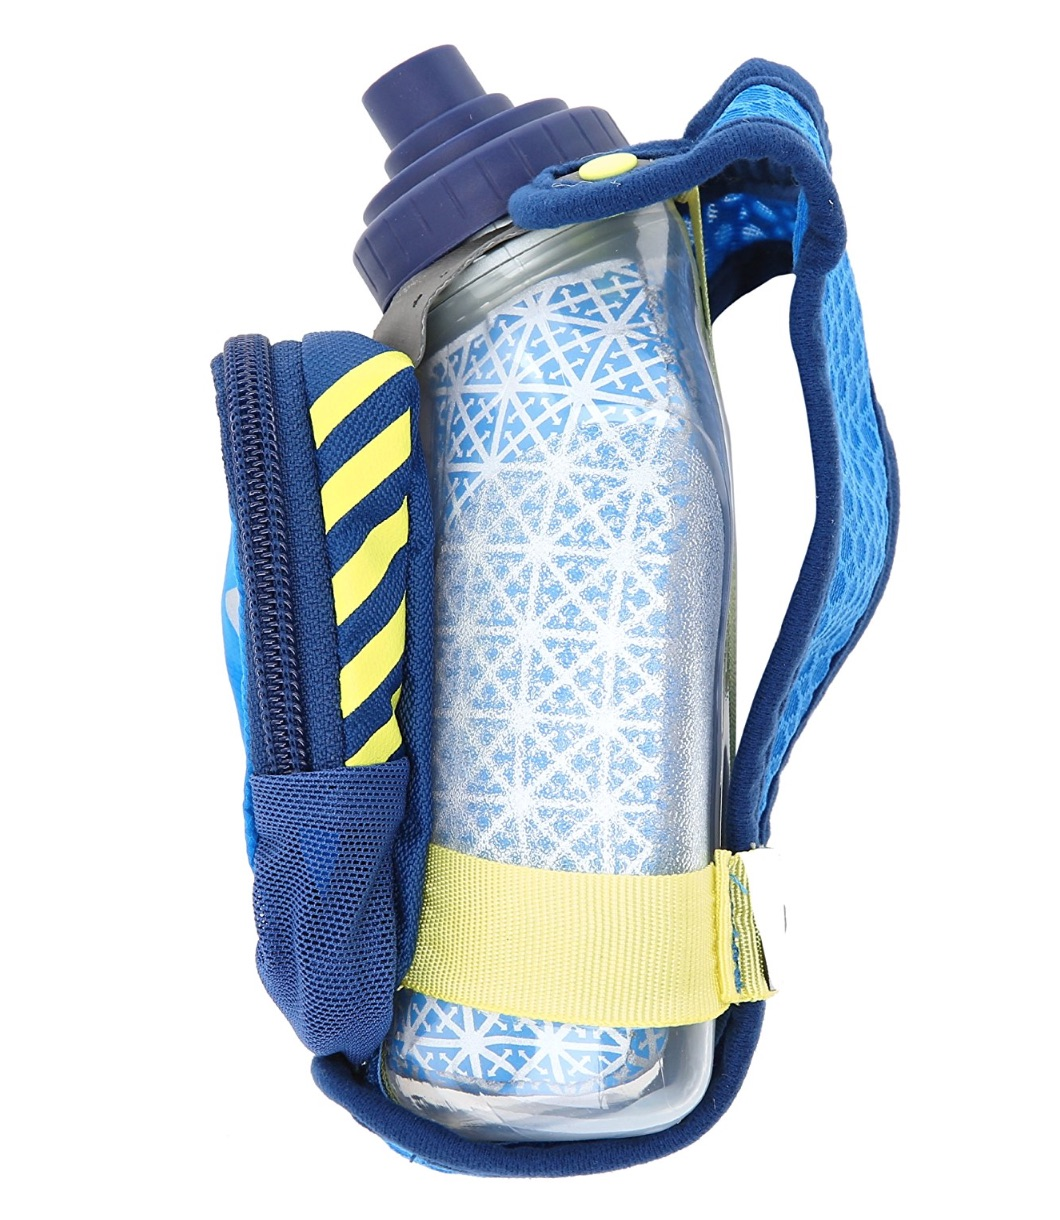 Nathan QuickShot Plus Insulated Hydration Flask 300ml